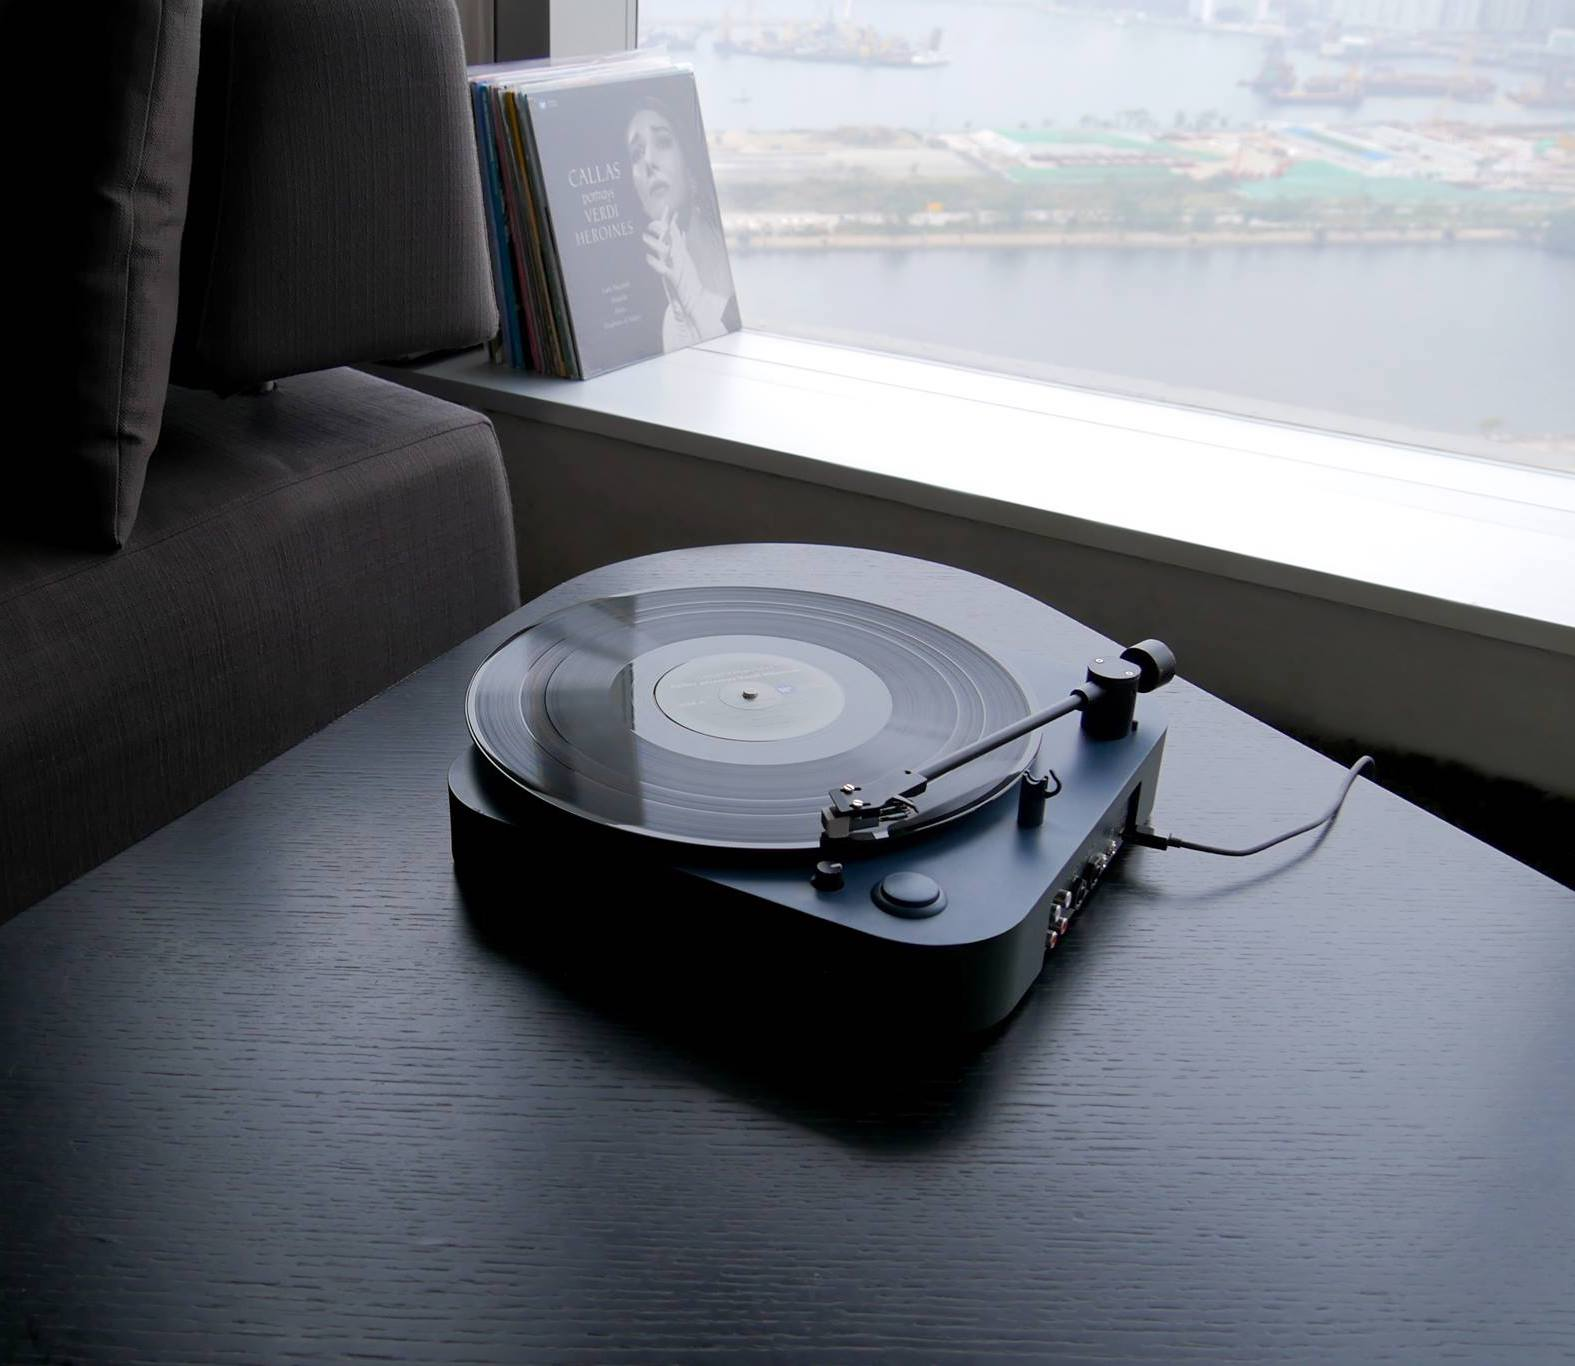 Headache Sound OMNI Portable Record Player goes with you anywhere